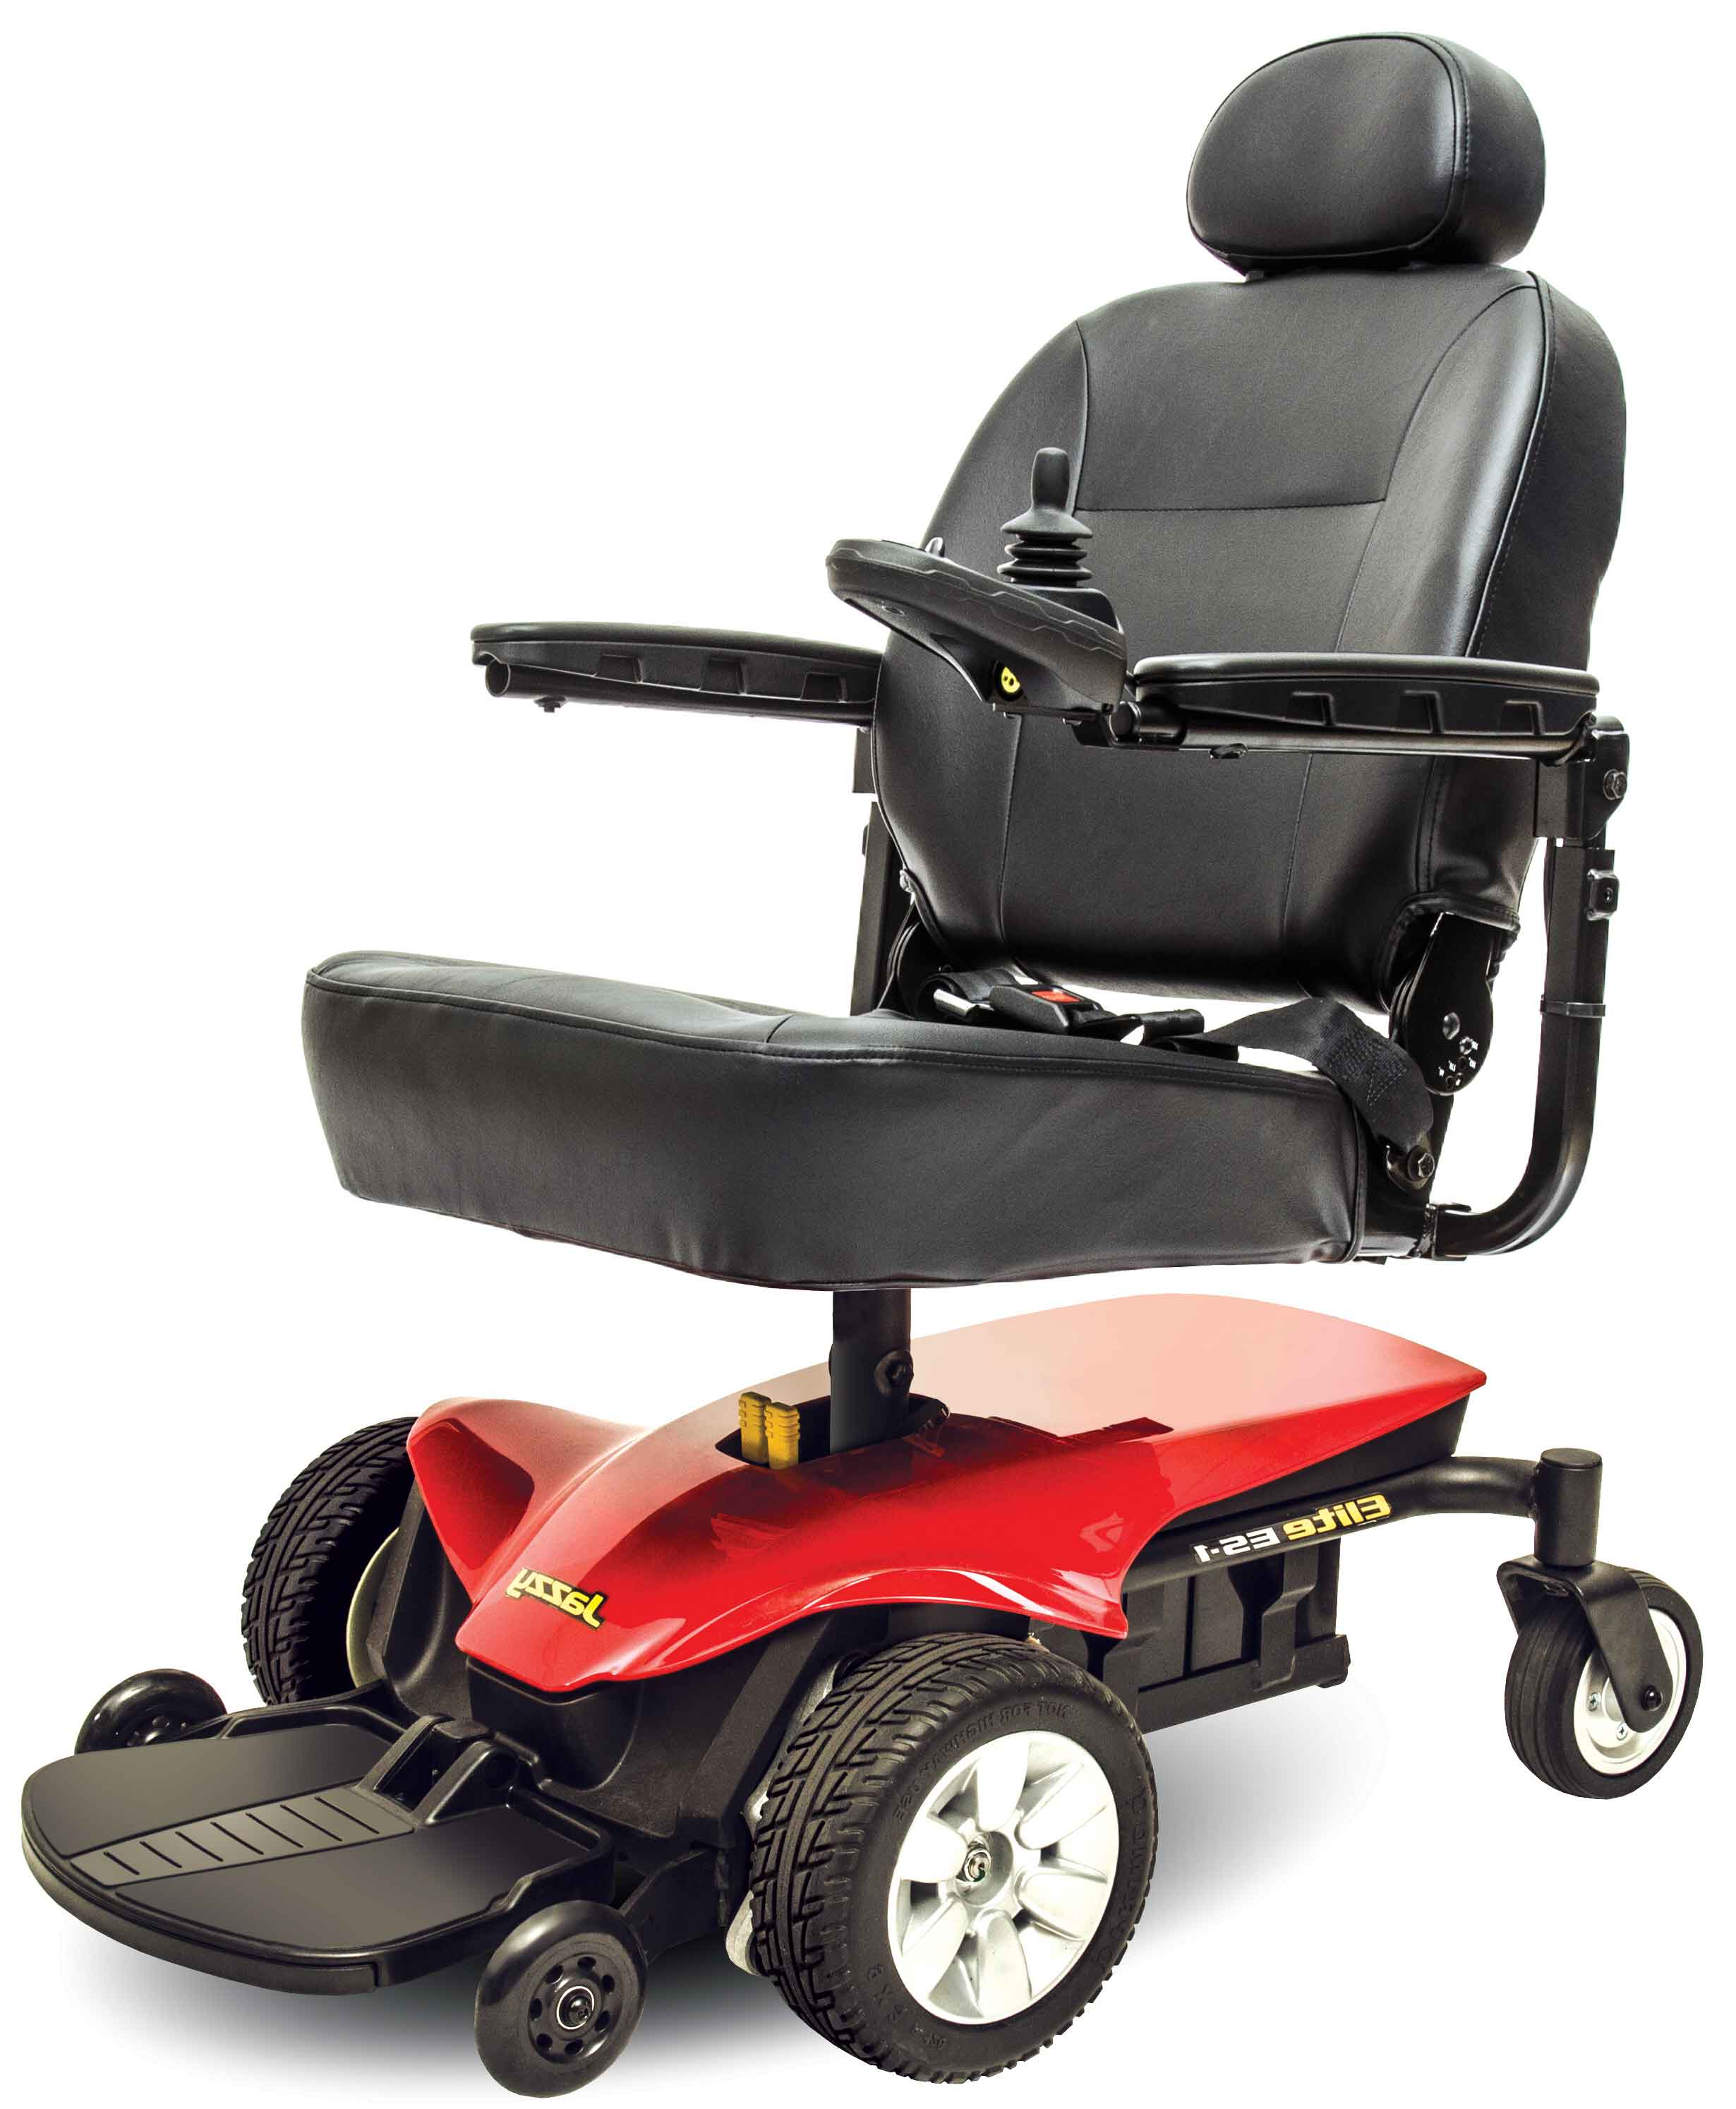 Mobility Plus offers the largest selection of power wheelchairs